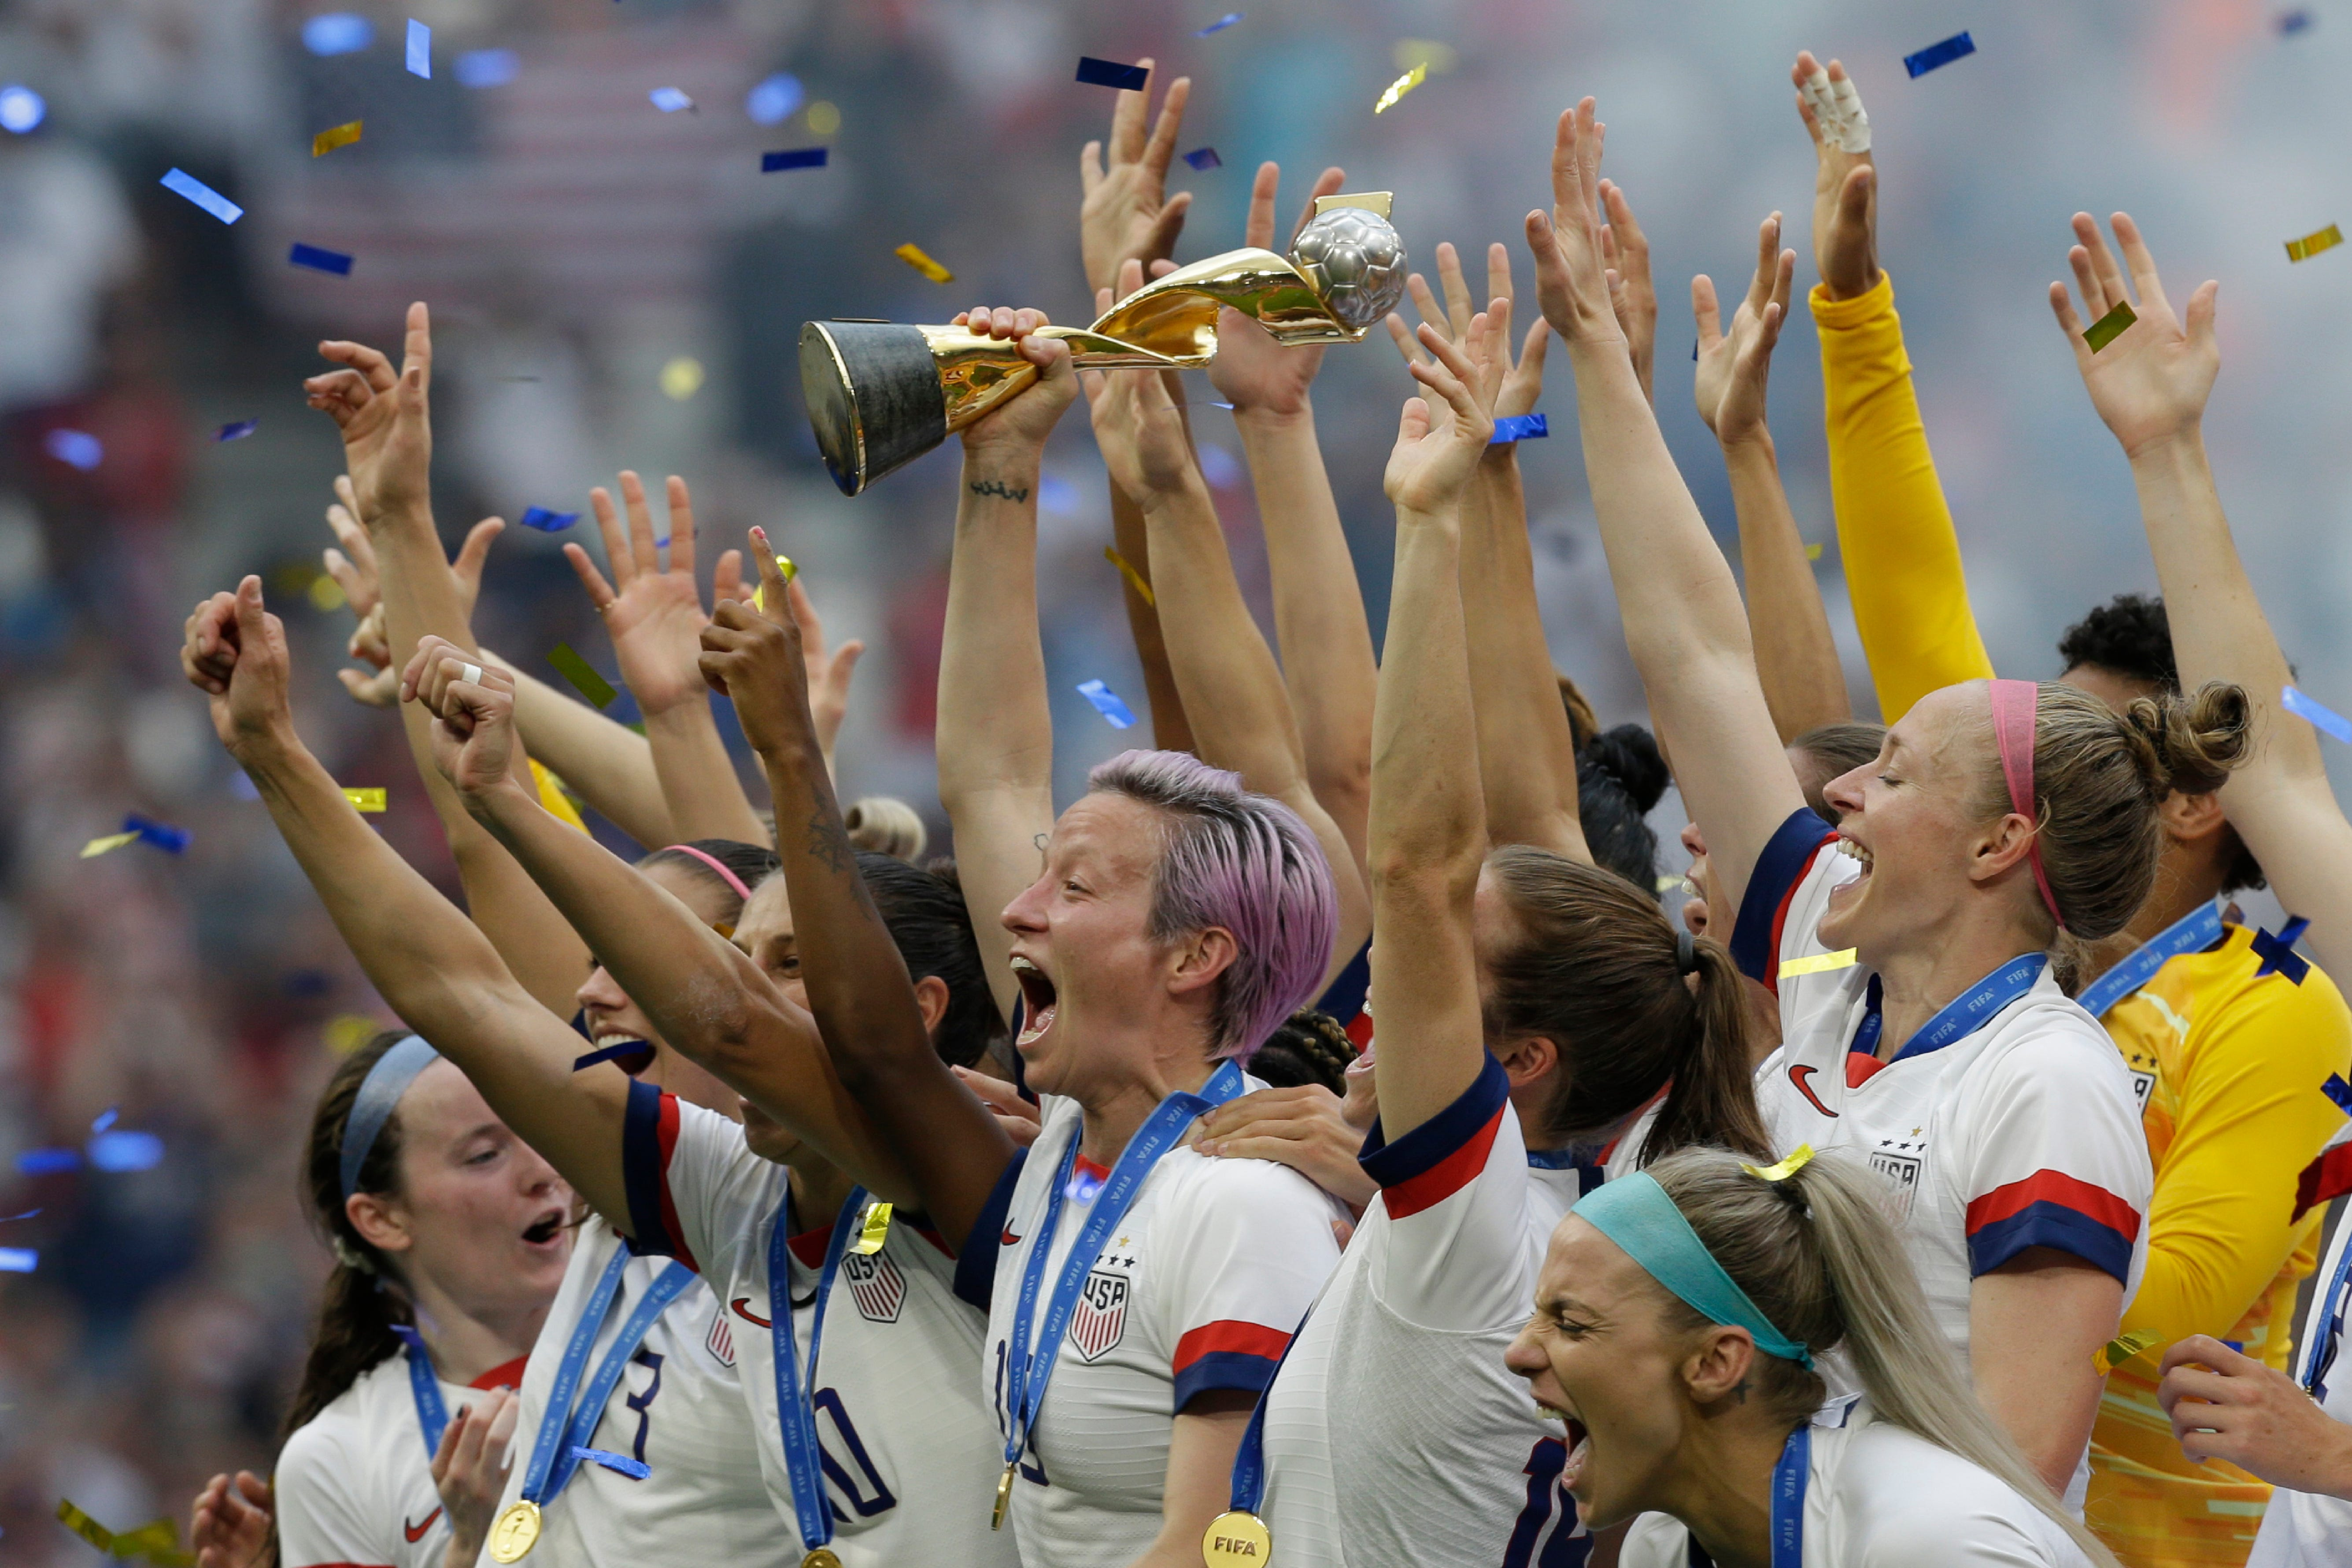 Decade in sports: Why USWNT is the team of the decade